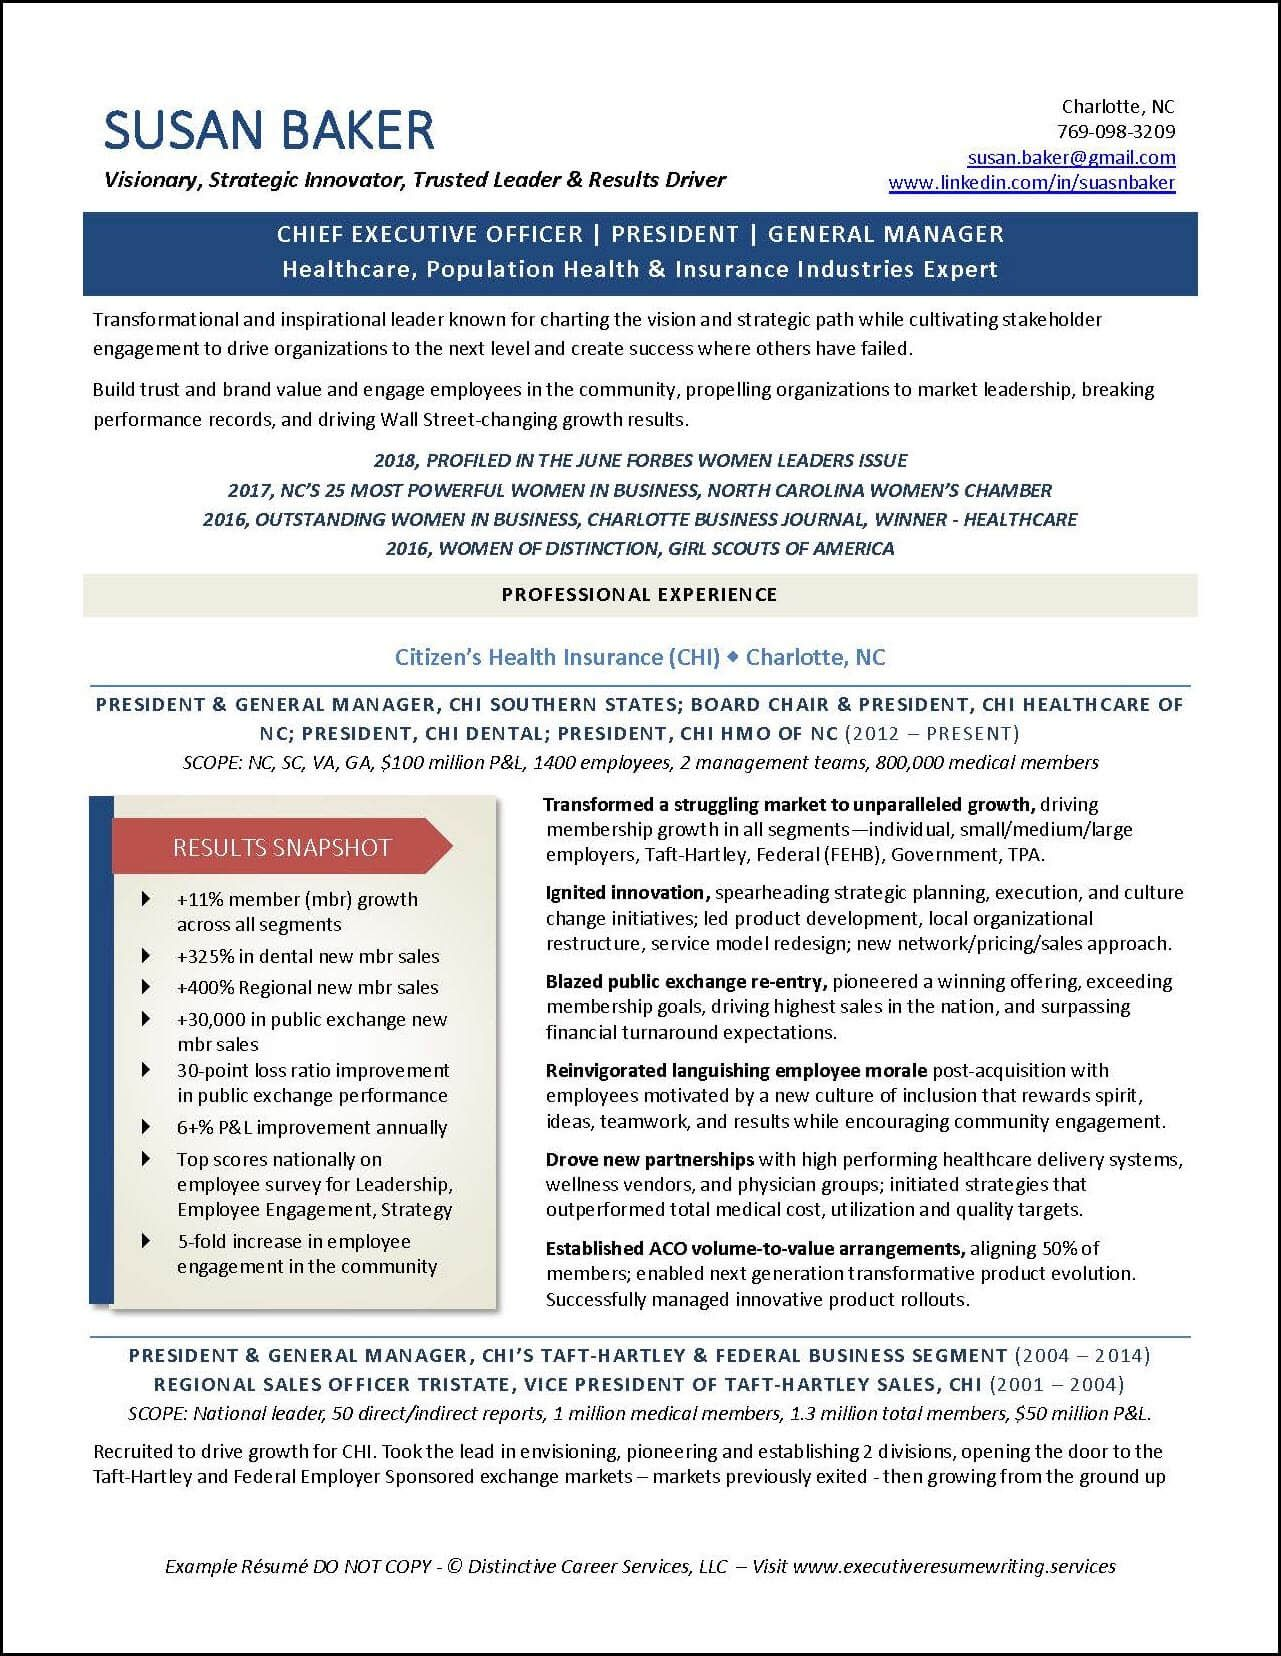 Example Ceo President Executive Resume Pg 1 The Professional